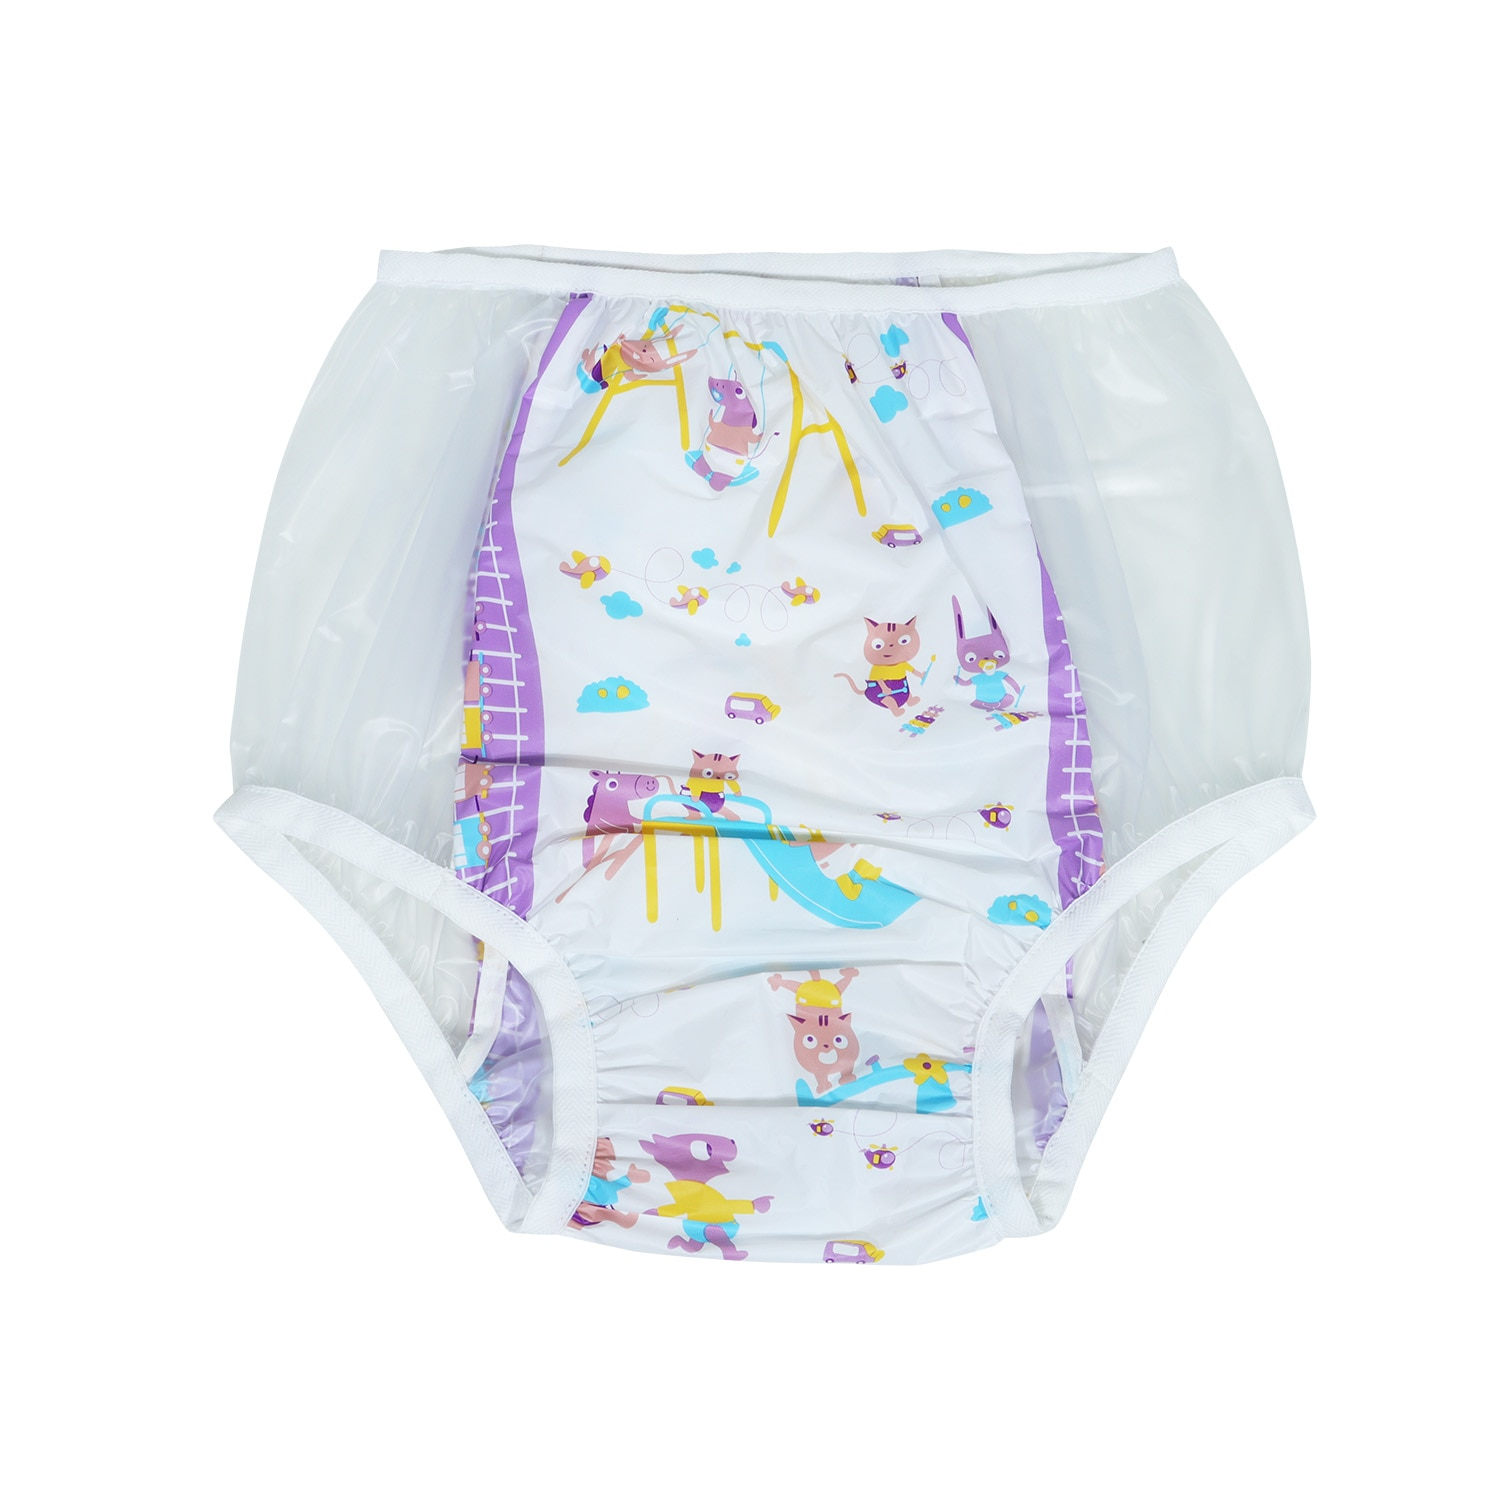 abdl adult baby diapers animal print diapers panties 6 pvc reusable panties Baby pants ddlg with Adult Pacifier little space 9P enlarge